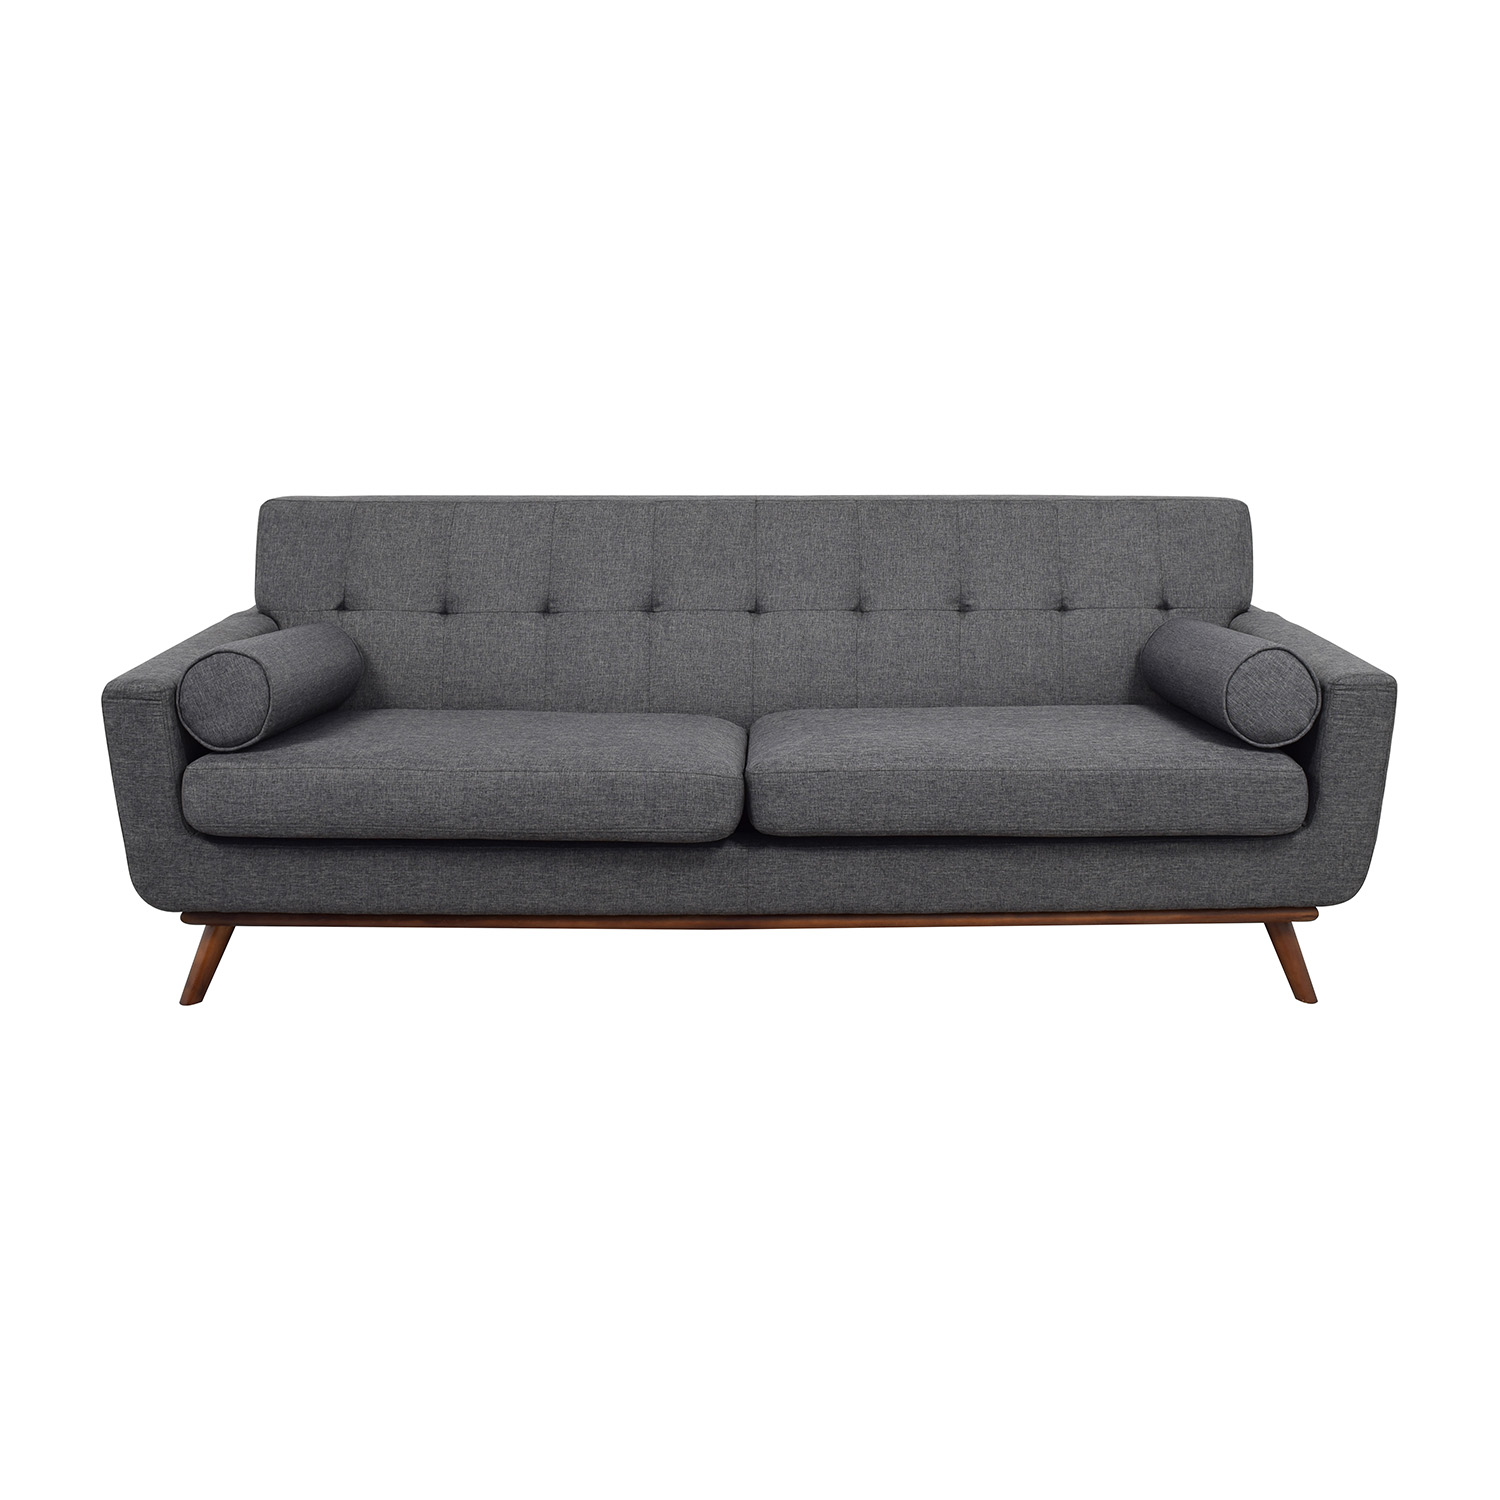 Inmod Inmod Charcoal Grey Tufted Lars Sofa with Pillows Sofas